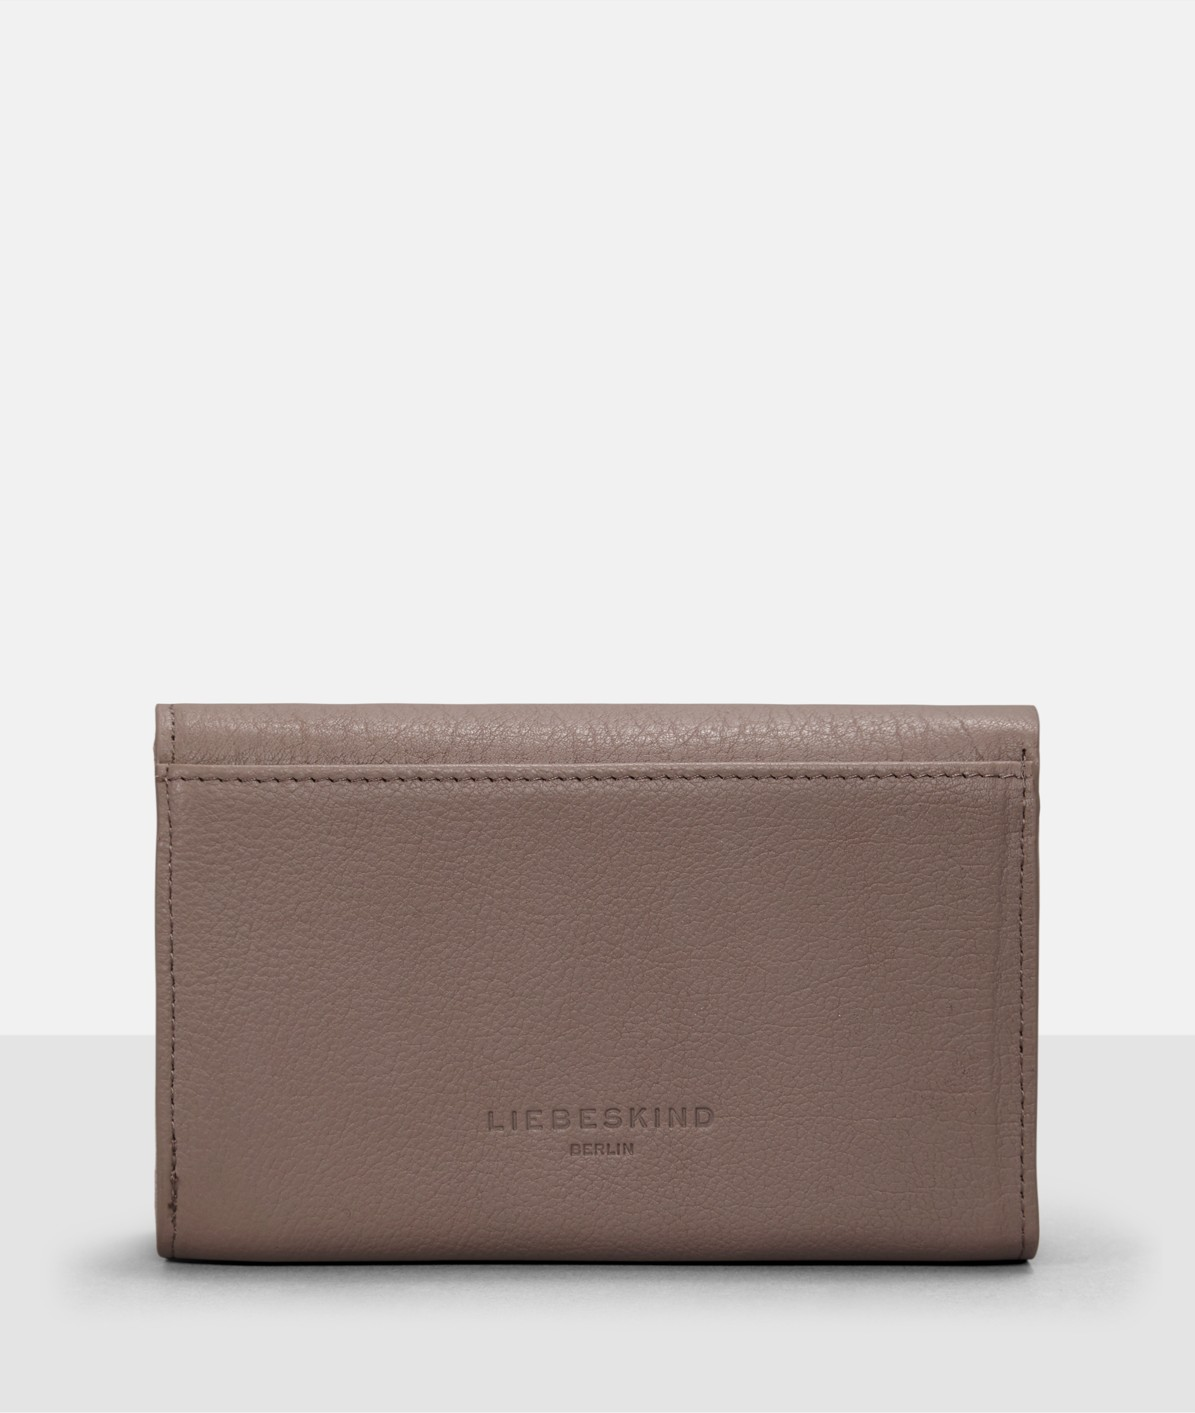 Purse with an exclusive fastening from liebeskind